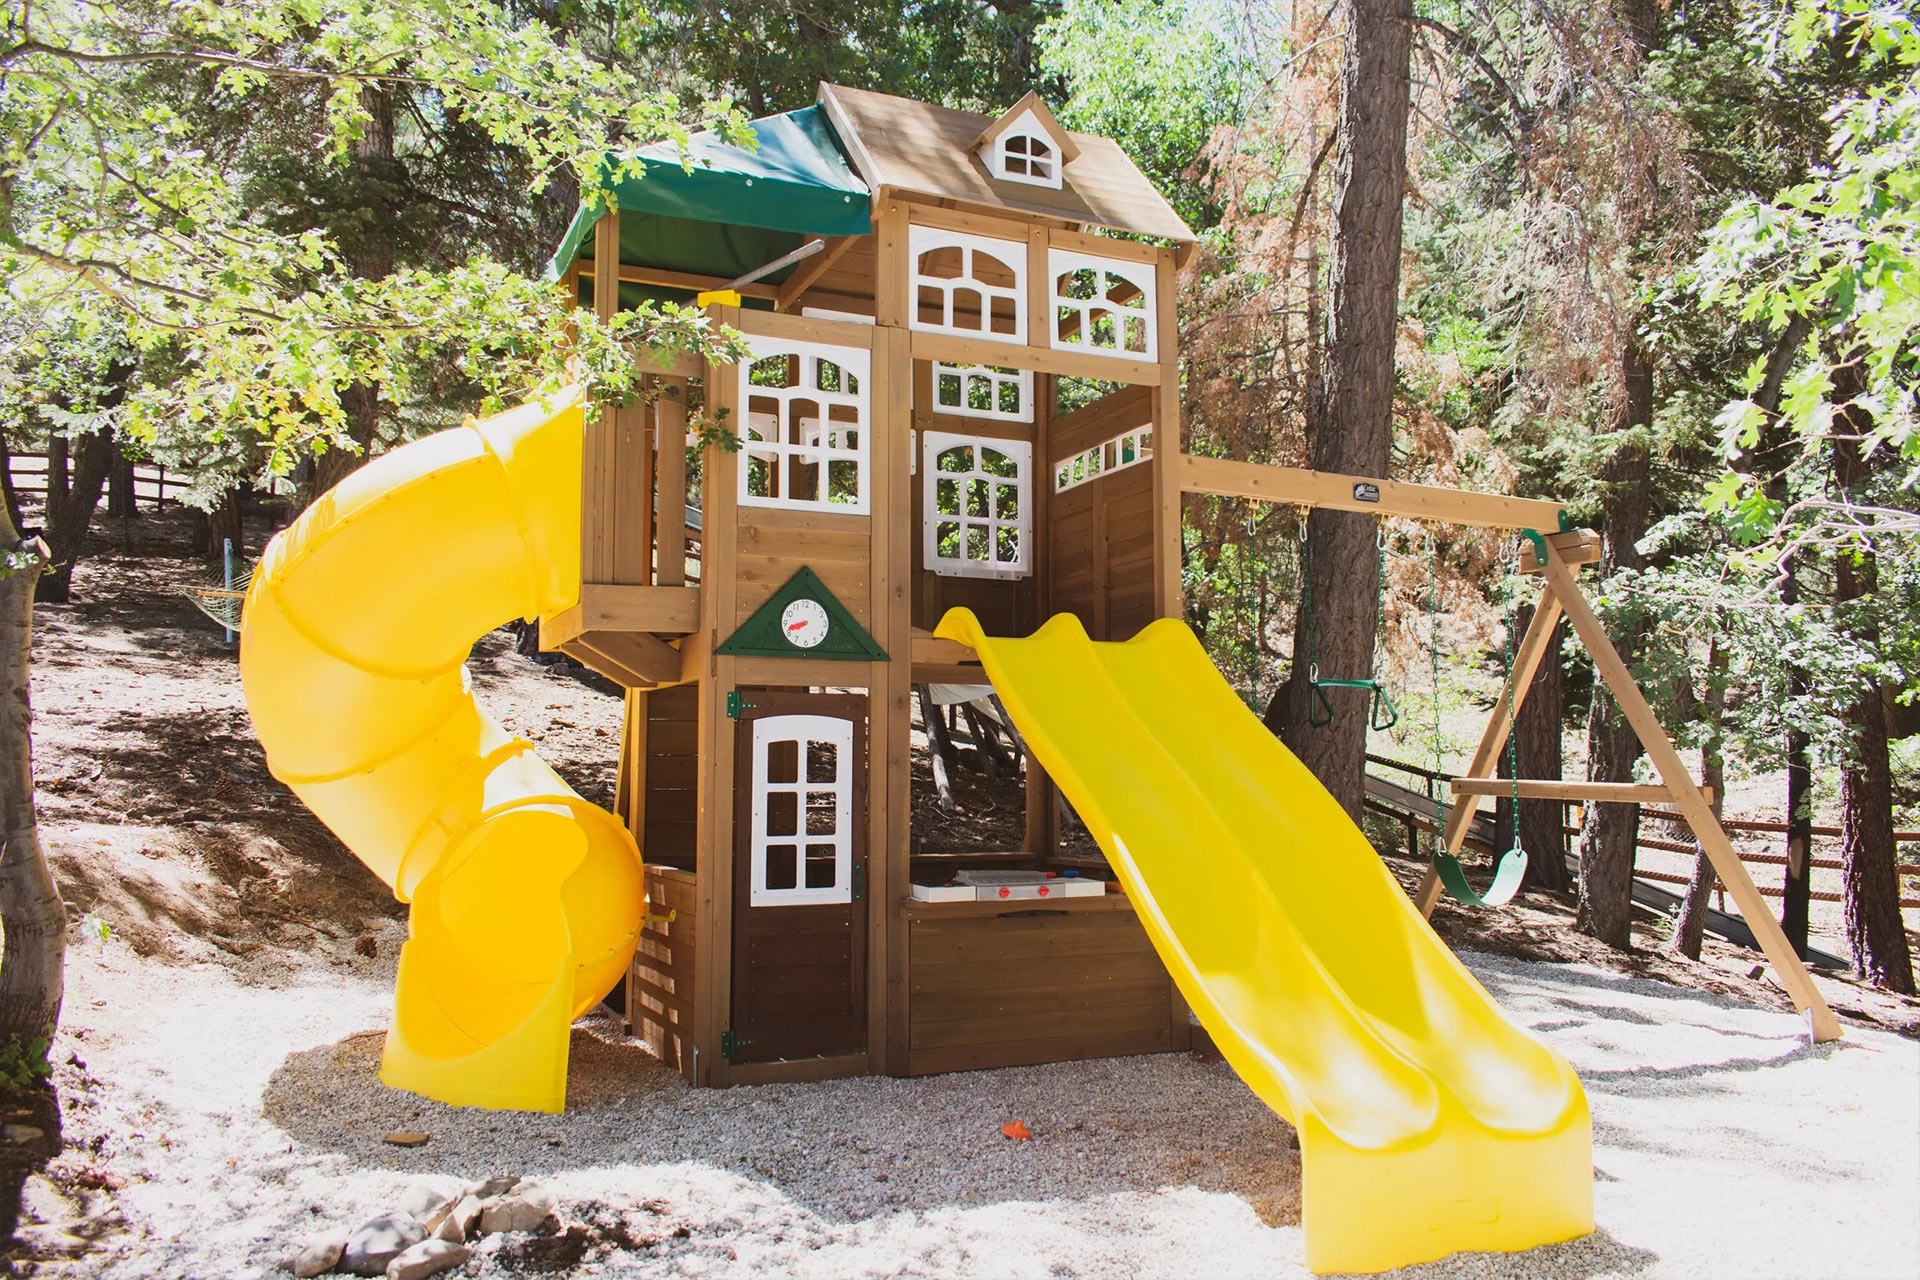 A playhouse for the kids to play on